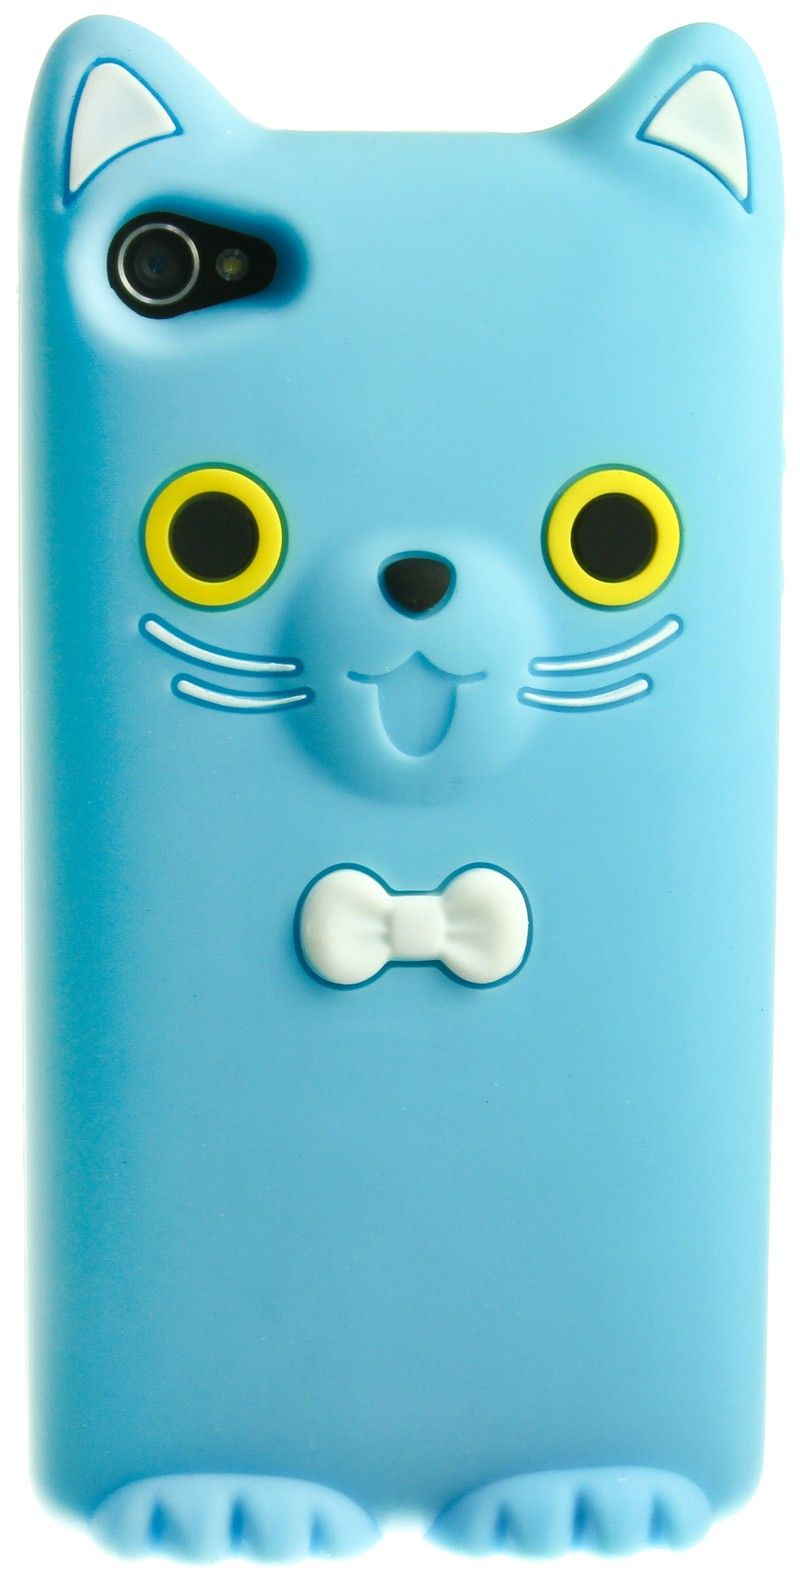 Blue cat iphone 44s case with images cats iphone 4s